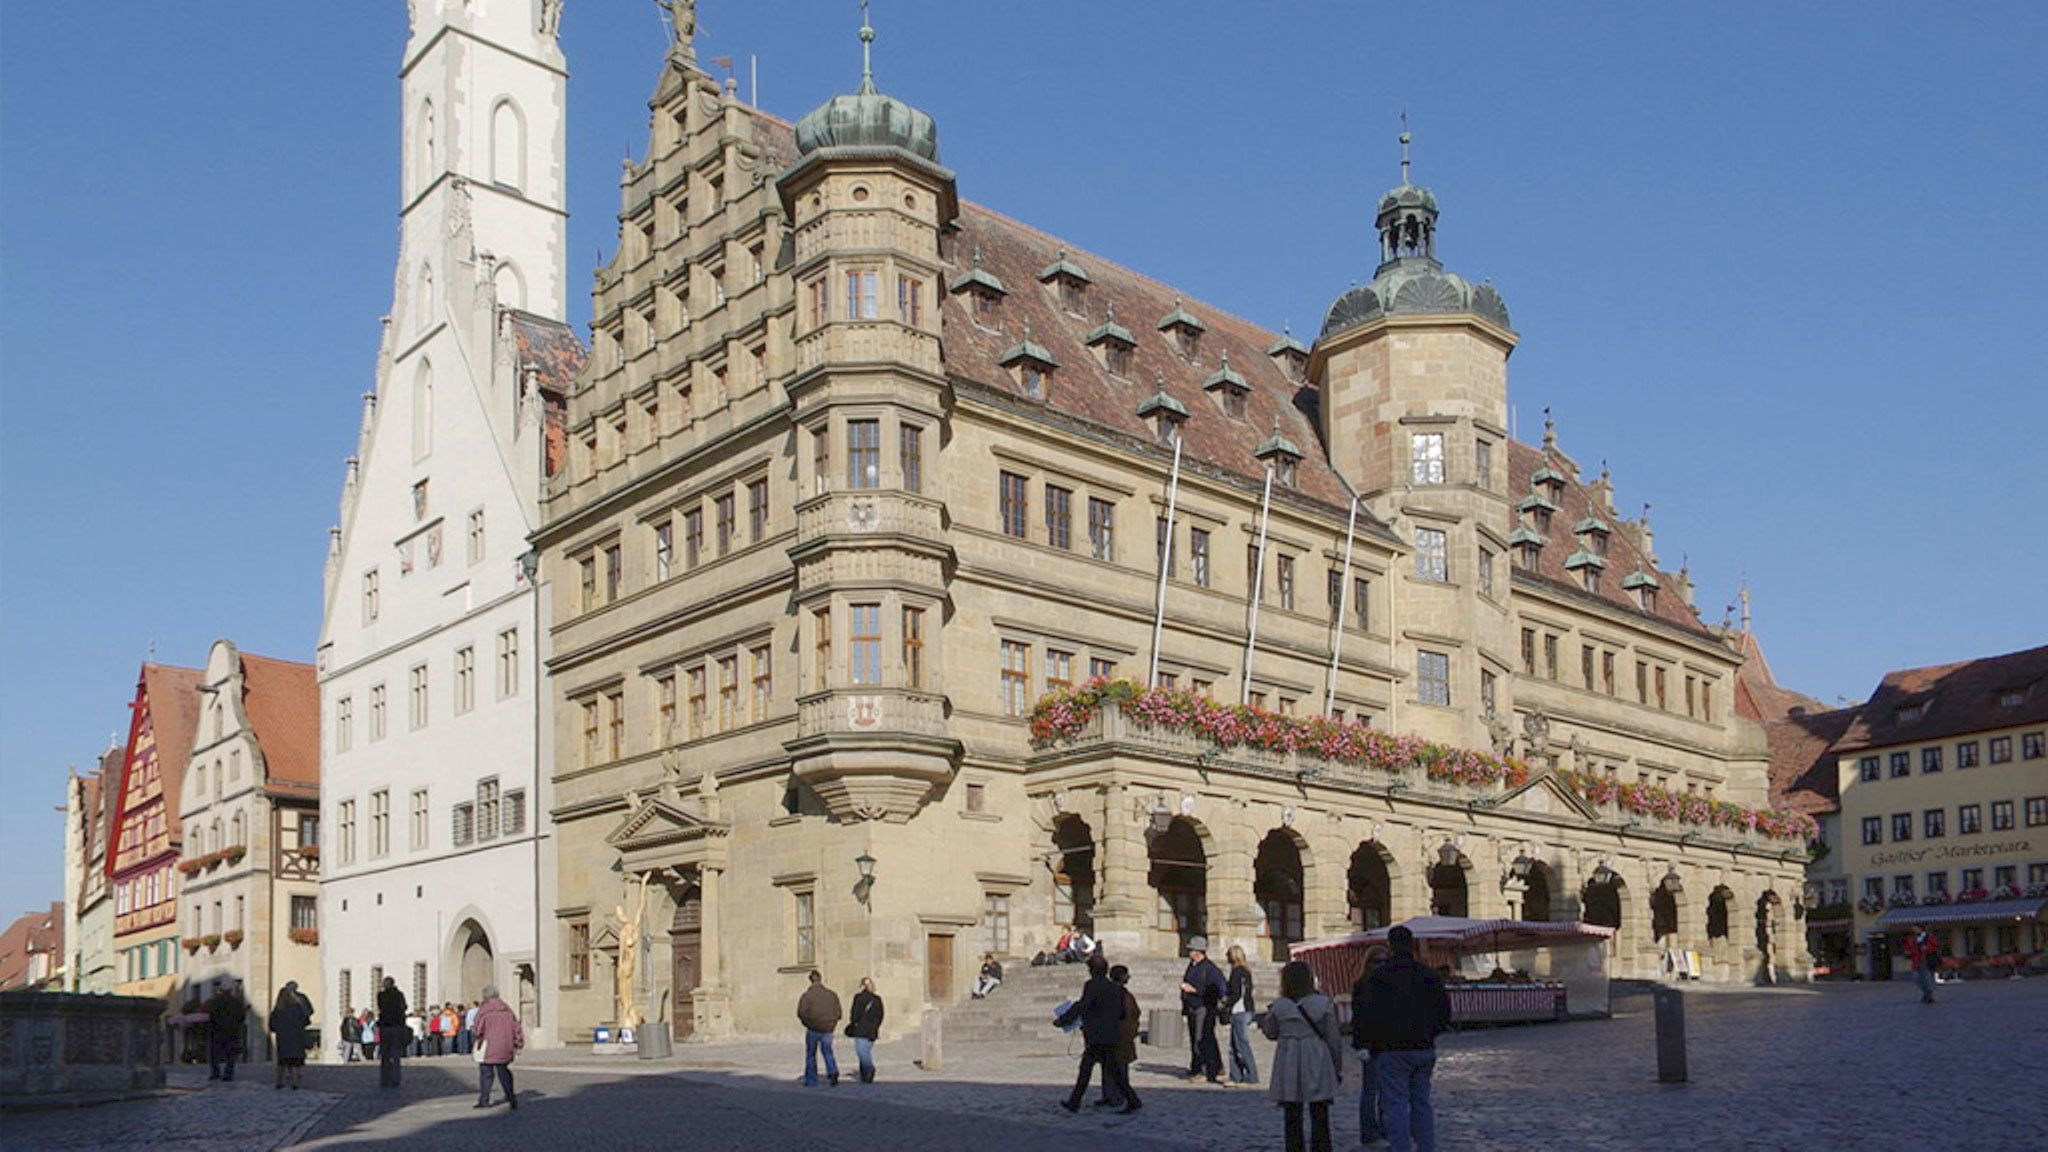 Rothenburg city hall building